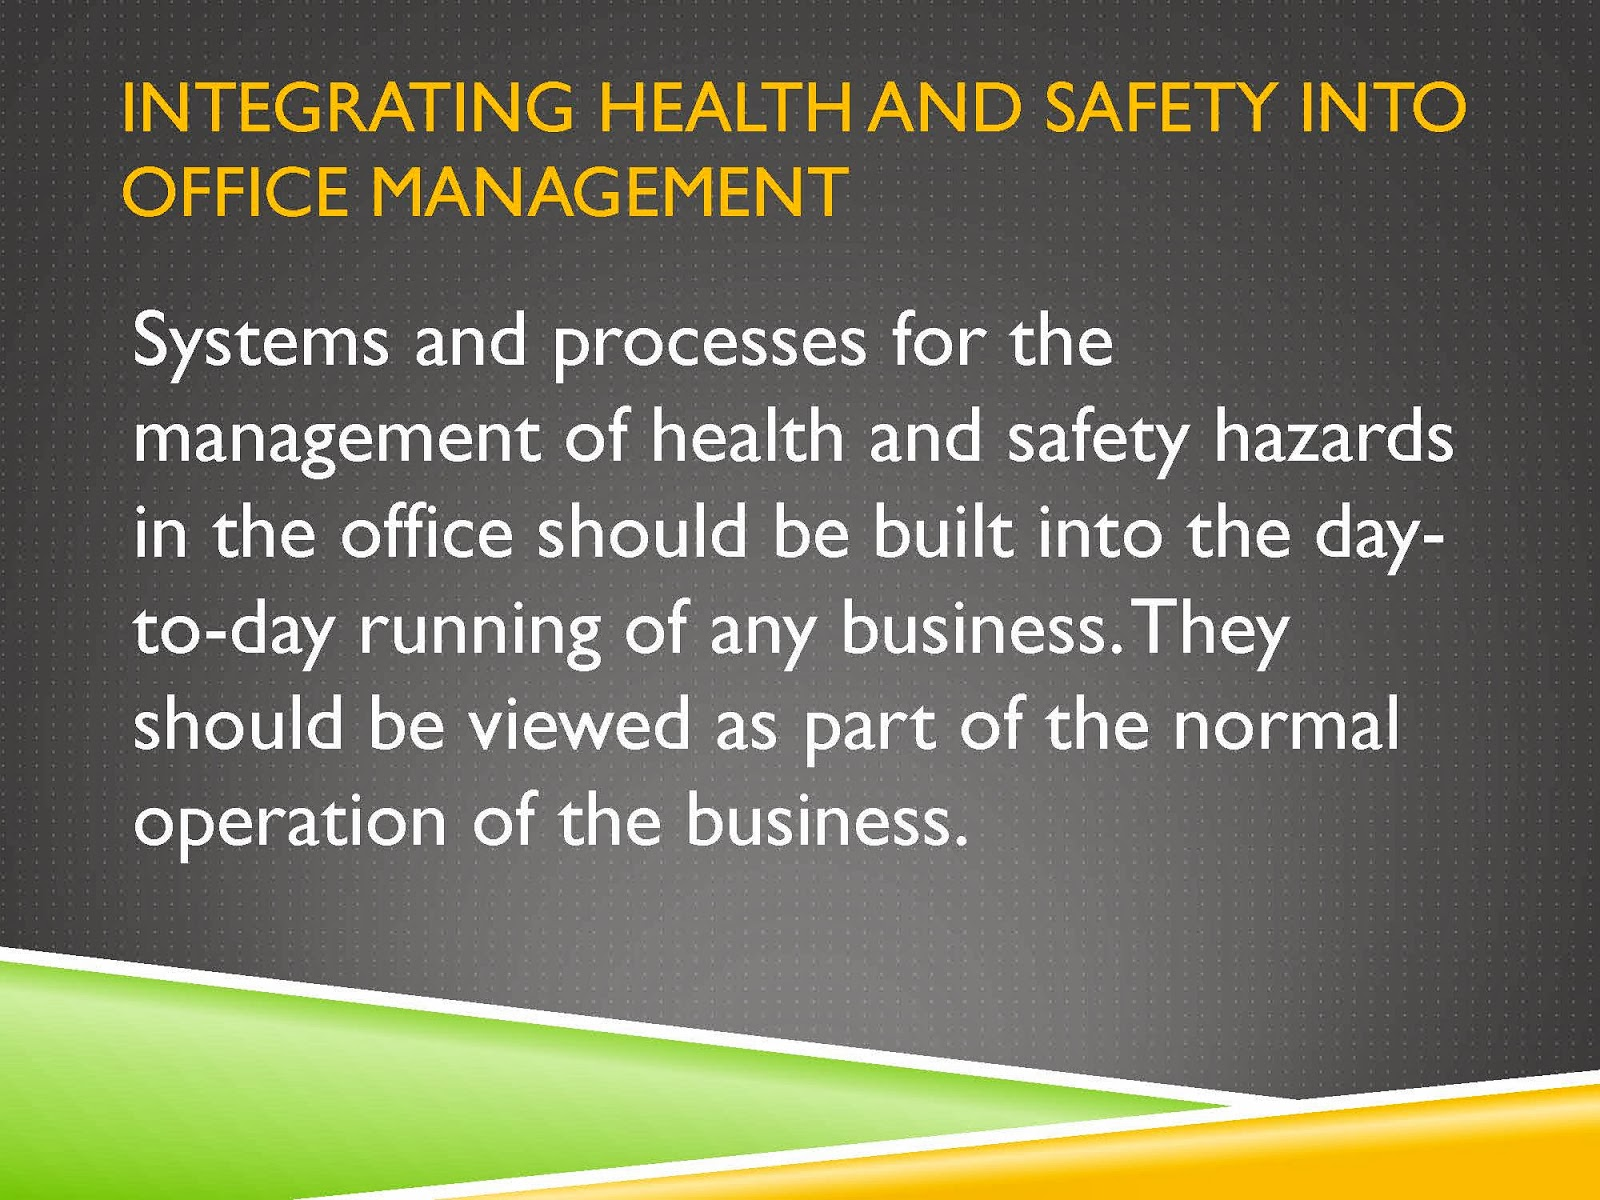 HEALTH AND SAFETY IN THE OFFICE